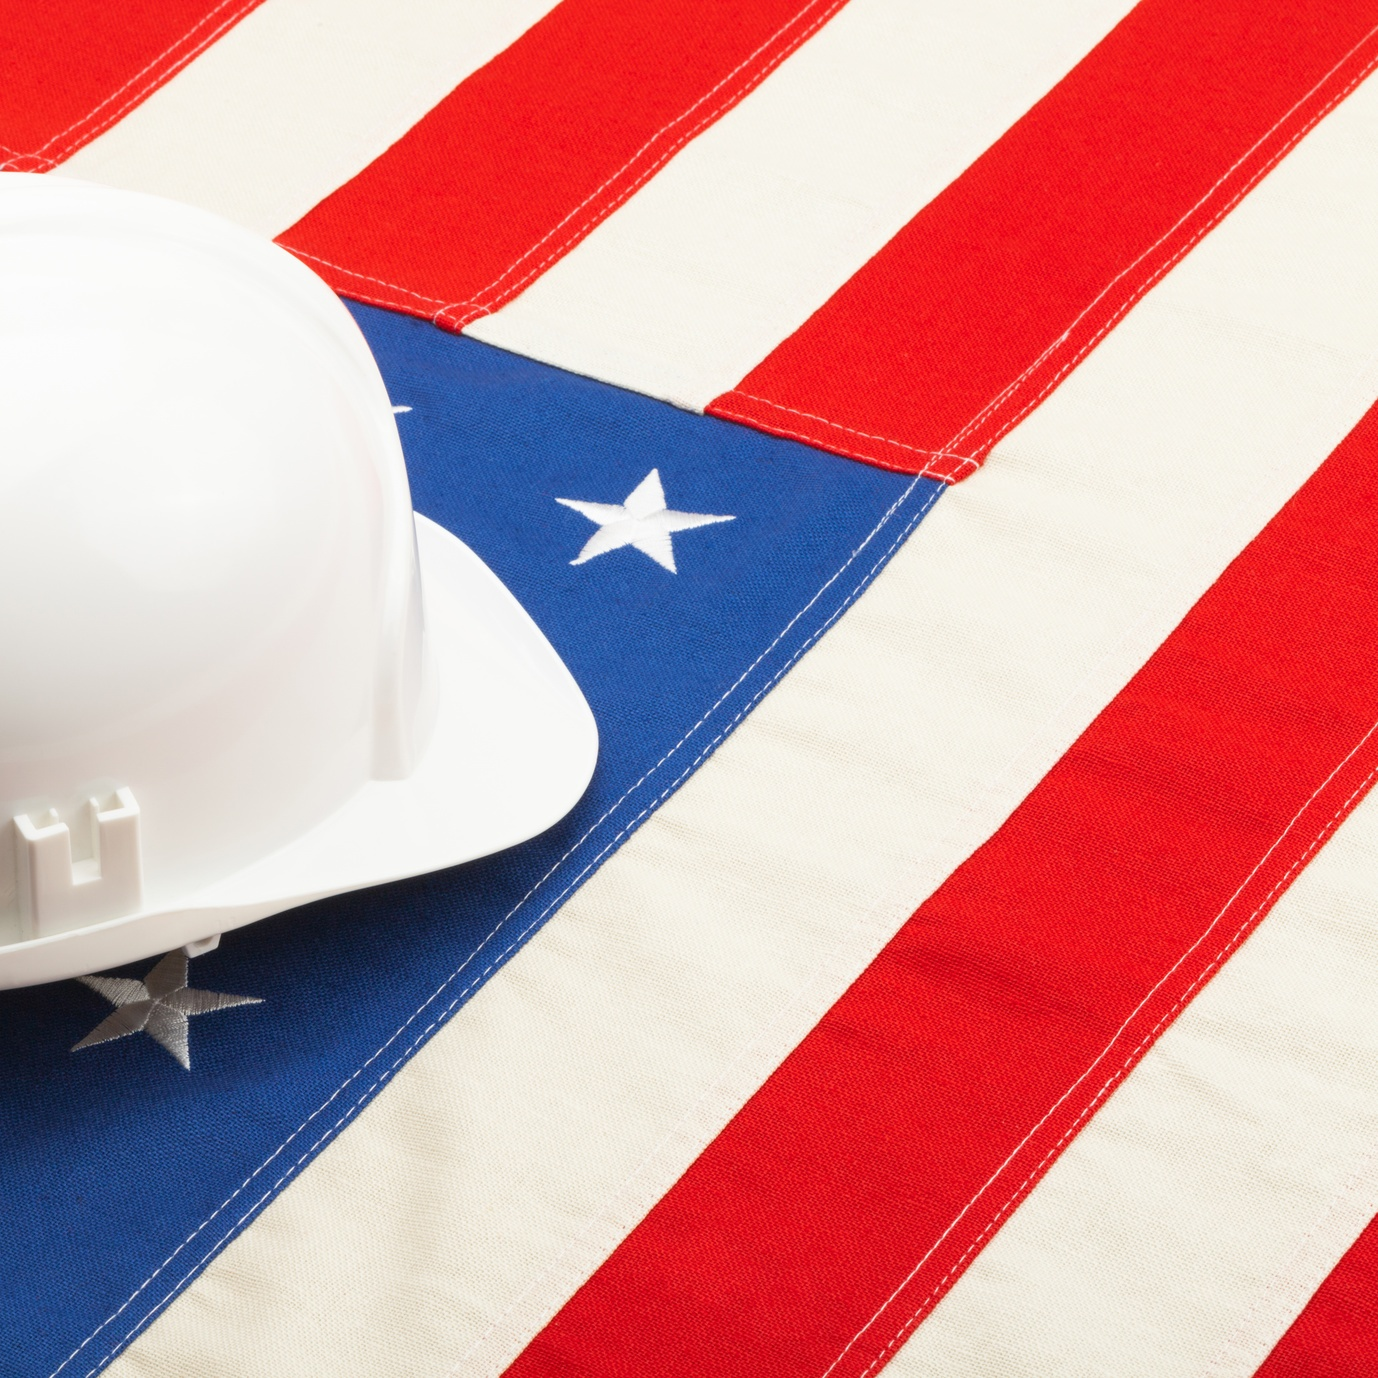 Next Shoring & What it Means for Manufacturing Businesses